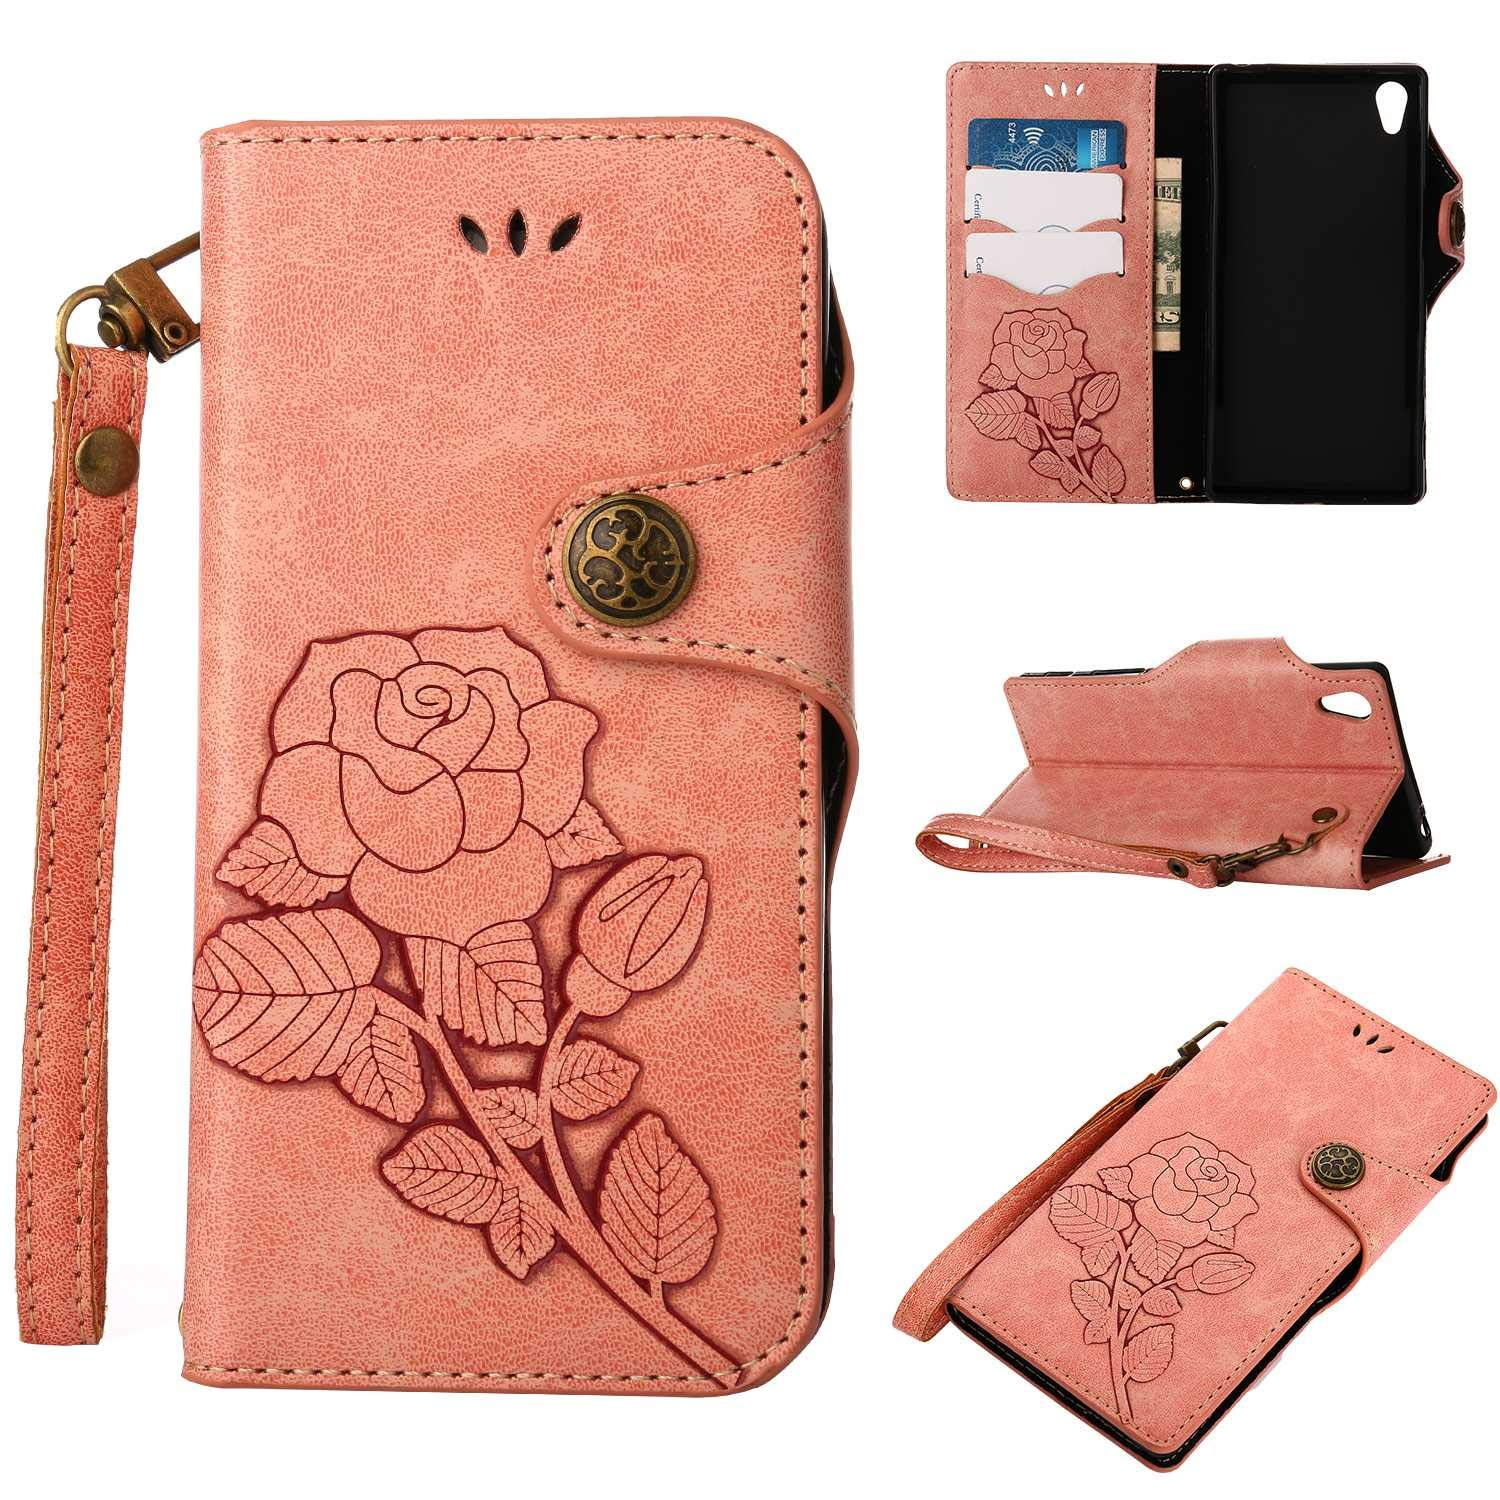 Sony Xperia Z5 Protective Case, UNEXTATI Vintage Rose Pattern Stand PU Leather Flip Cover, Wallet Case Cover with Hand Strap for Sony Xperia Z5 (Pink)